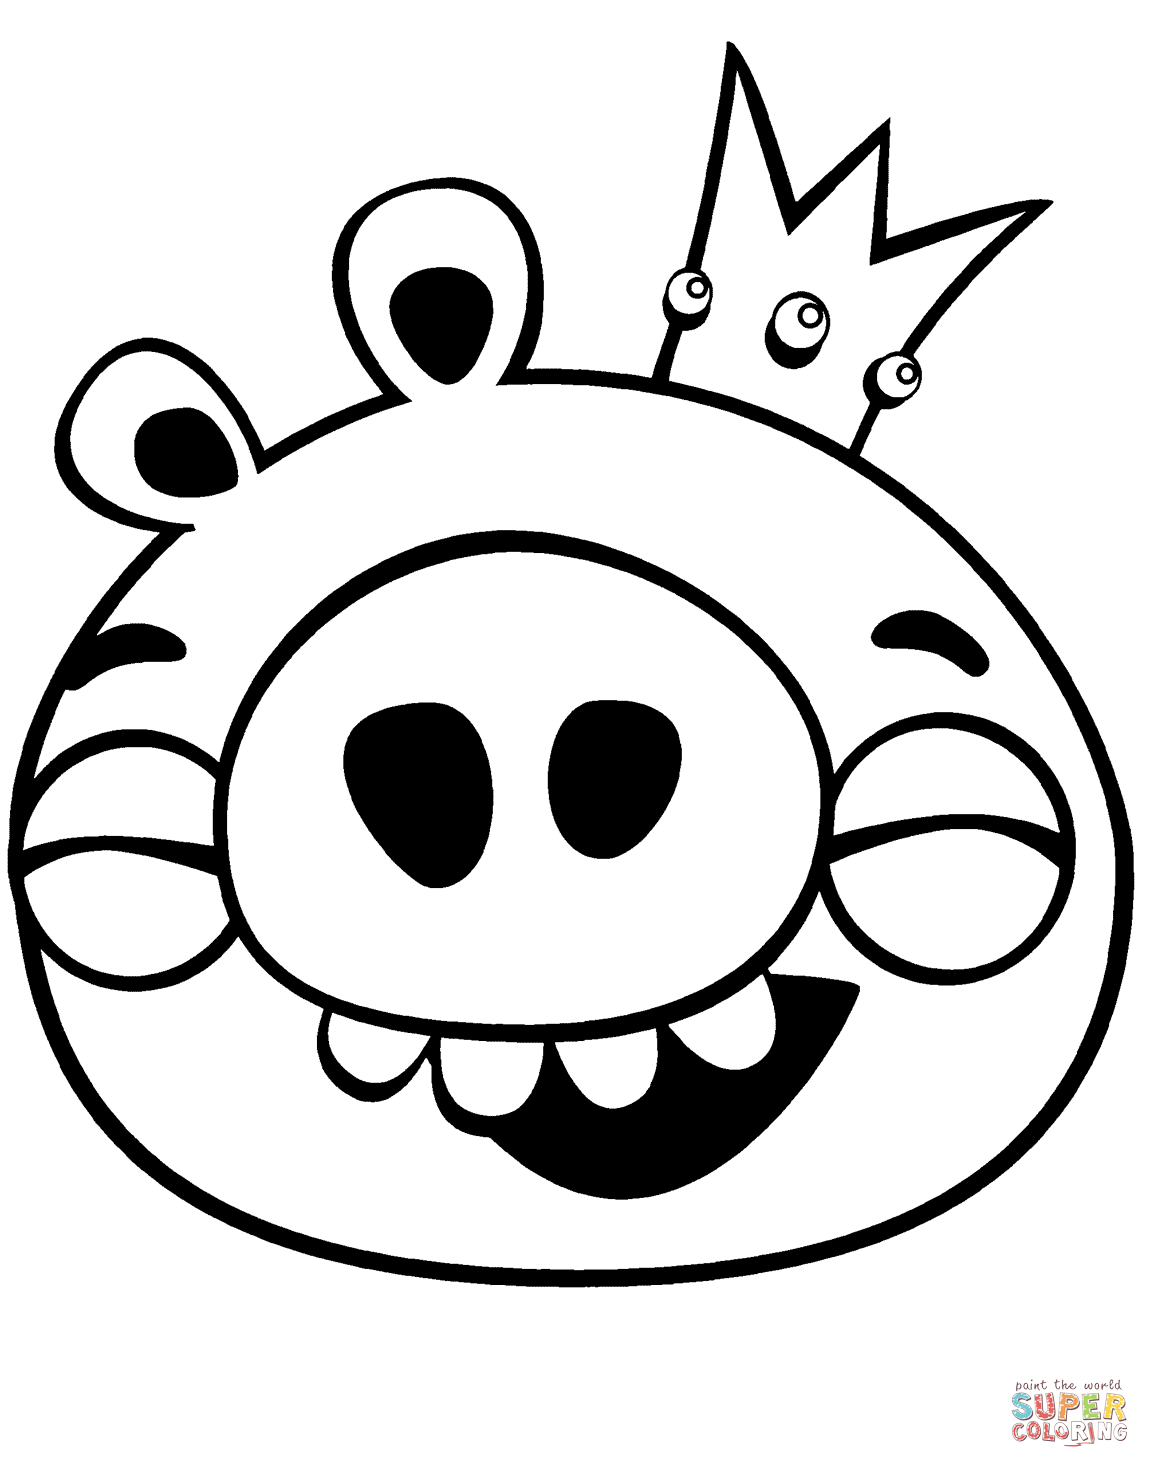 1150x1468 Cute Pig Coloring Page Clip Art Flying Animal Porky Guinea Three